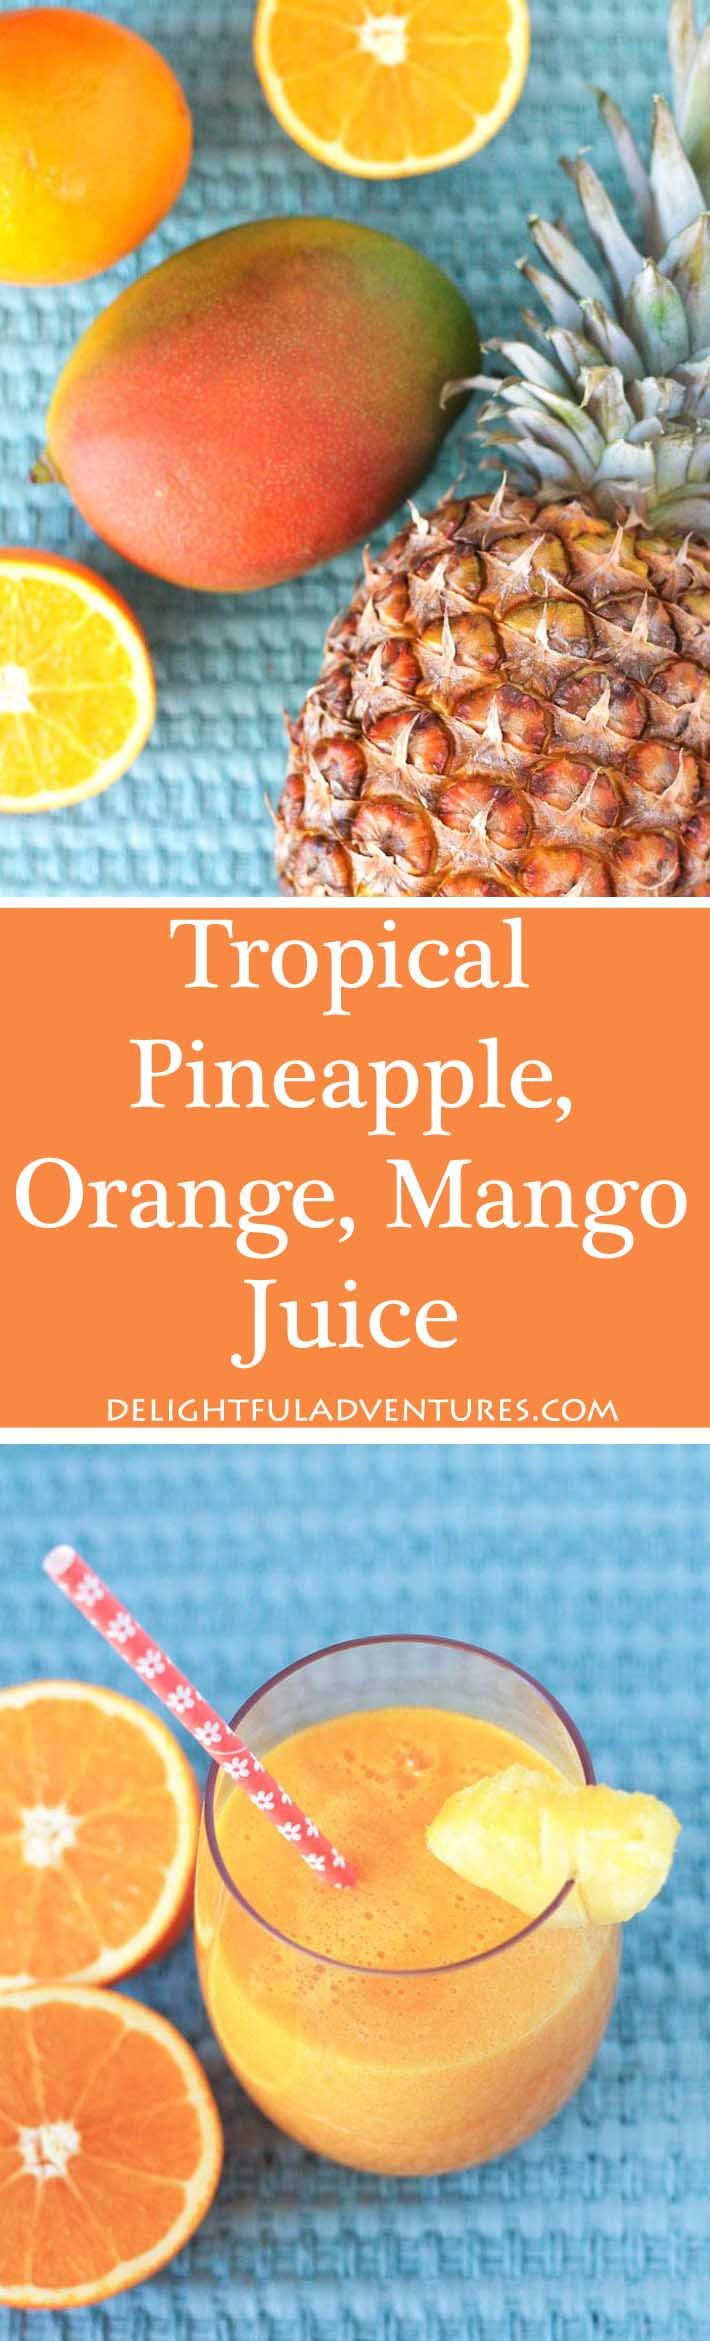 A glass of freshly-made pineapple orange mango juice is just what you need when you're looking for a refreshing tropical pick-me-up.